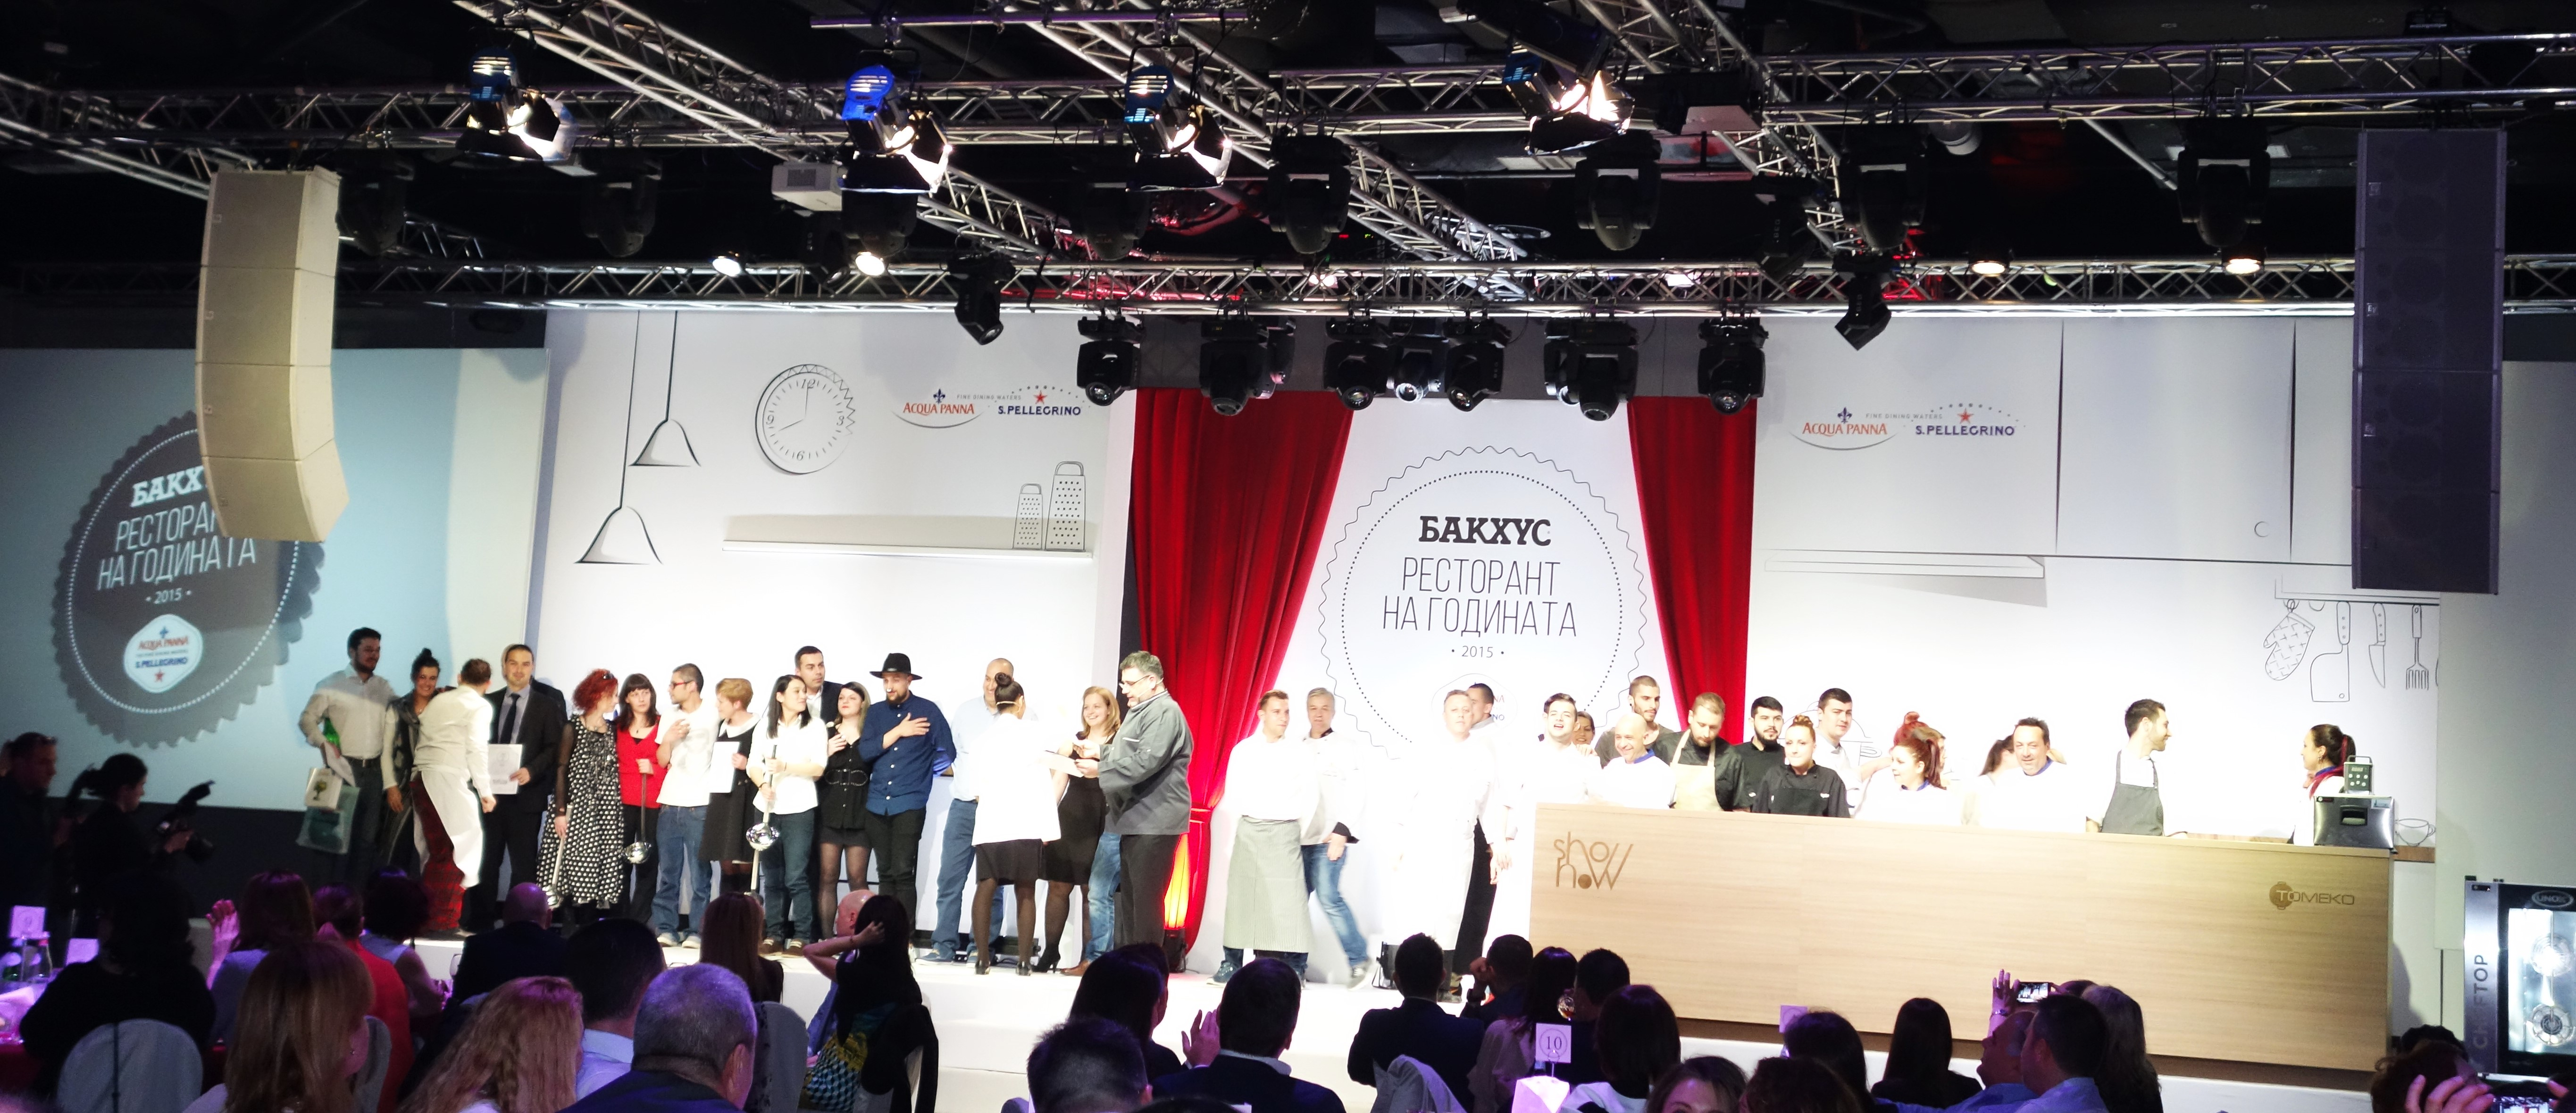 All Chefs at Restaurant of the Year 2015 by placescases.com